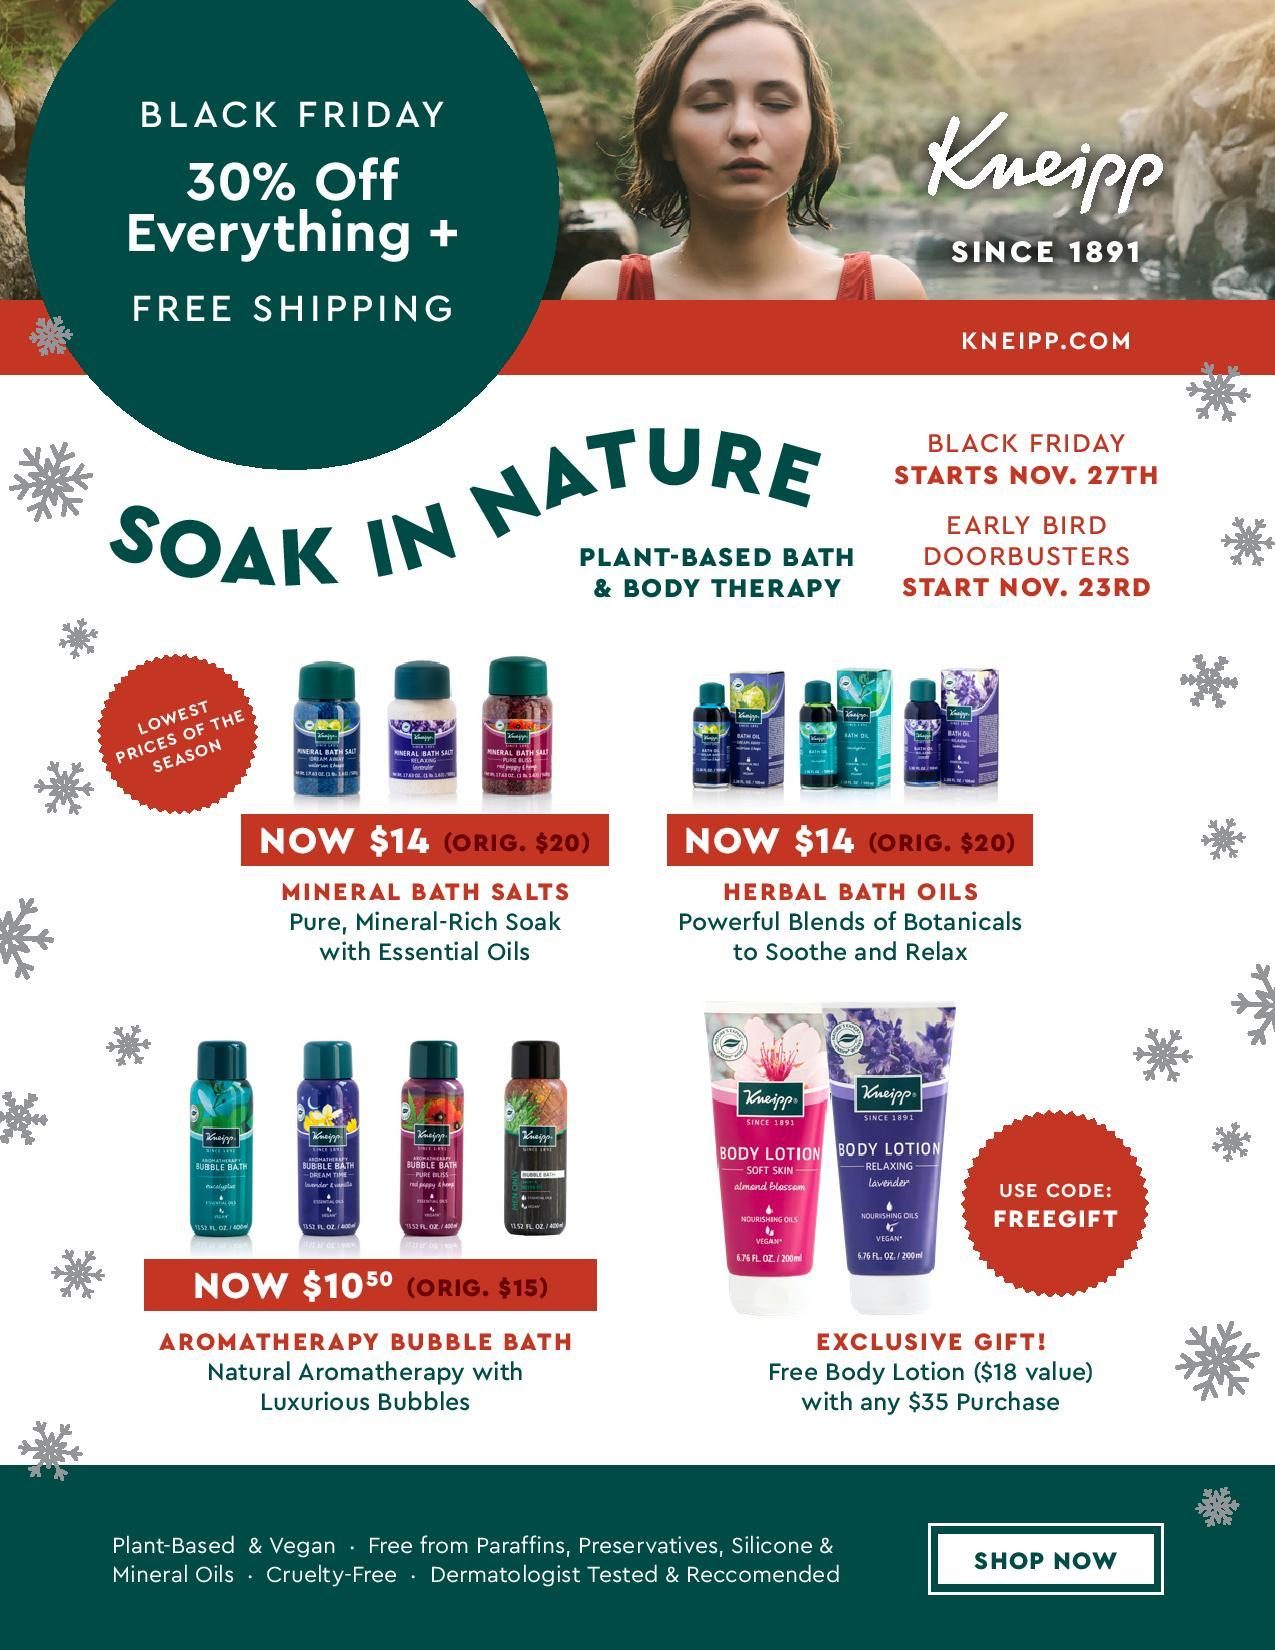 Kneipp Black Friday 2020 Ad